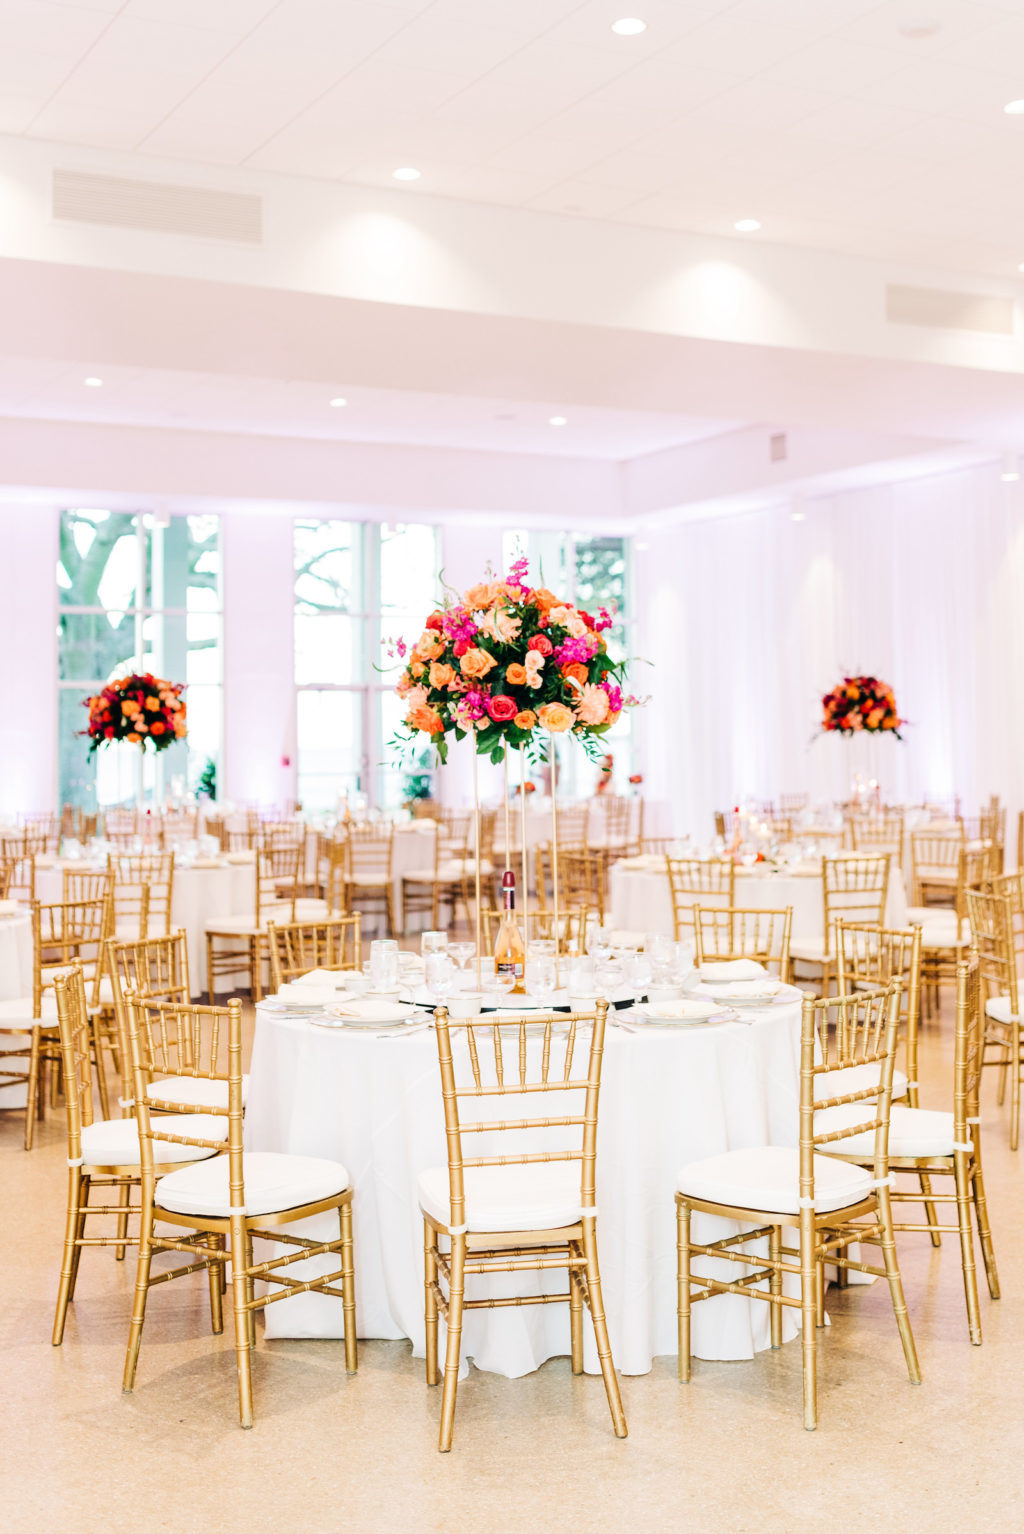 Elegant Wedding Reception Decor, Round Tables with White Table Linens, Gold Chiavari Chairs, Tall Gold Stand with Lush Vibrant Colorful Pink, Orange and Greenery Floral Centerpiece   Wedding Venue Tampa Garden Club   Wedding Rentals Kate Ryan Event Rentals   Wedding Florist Monarch Events and Design